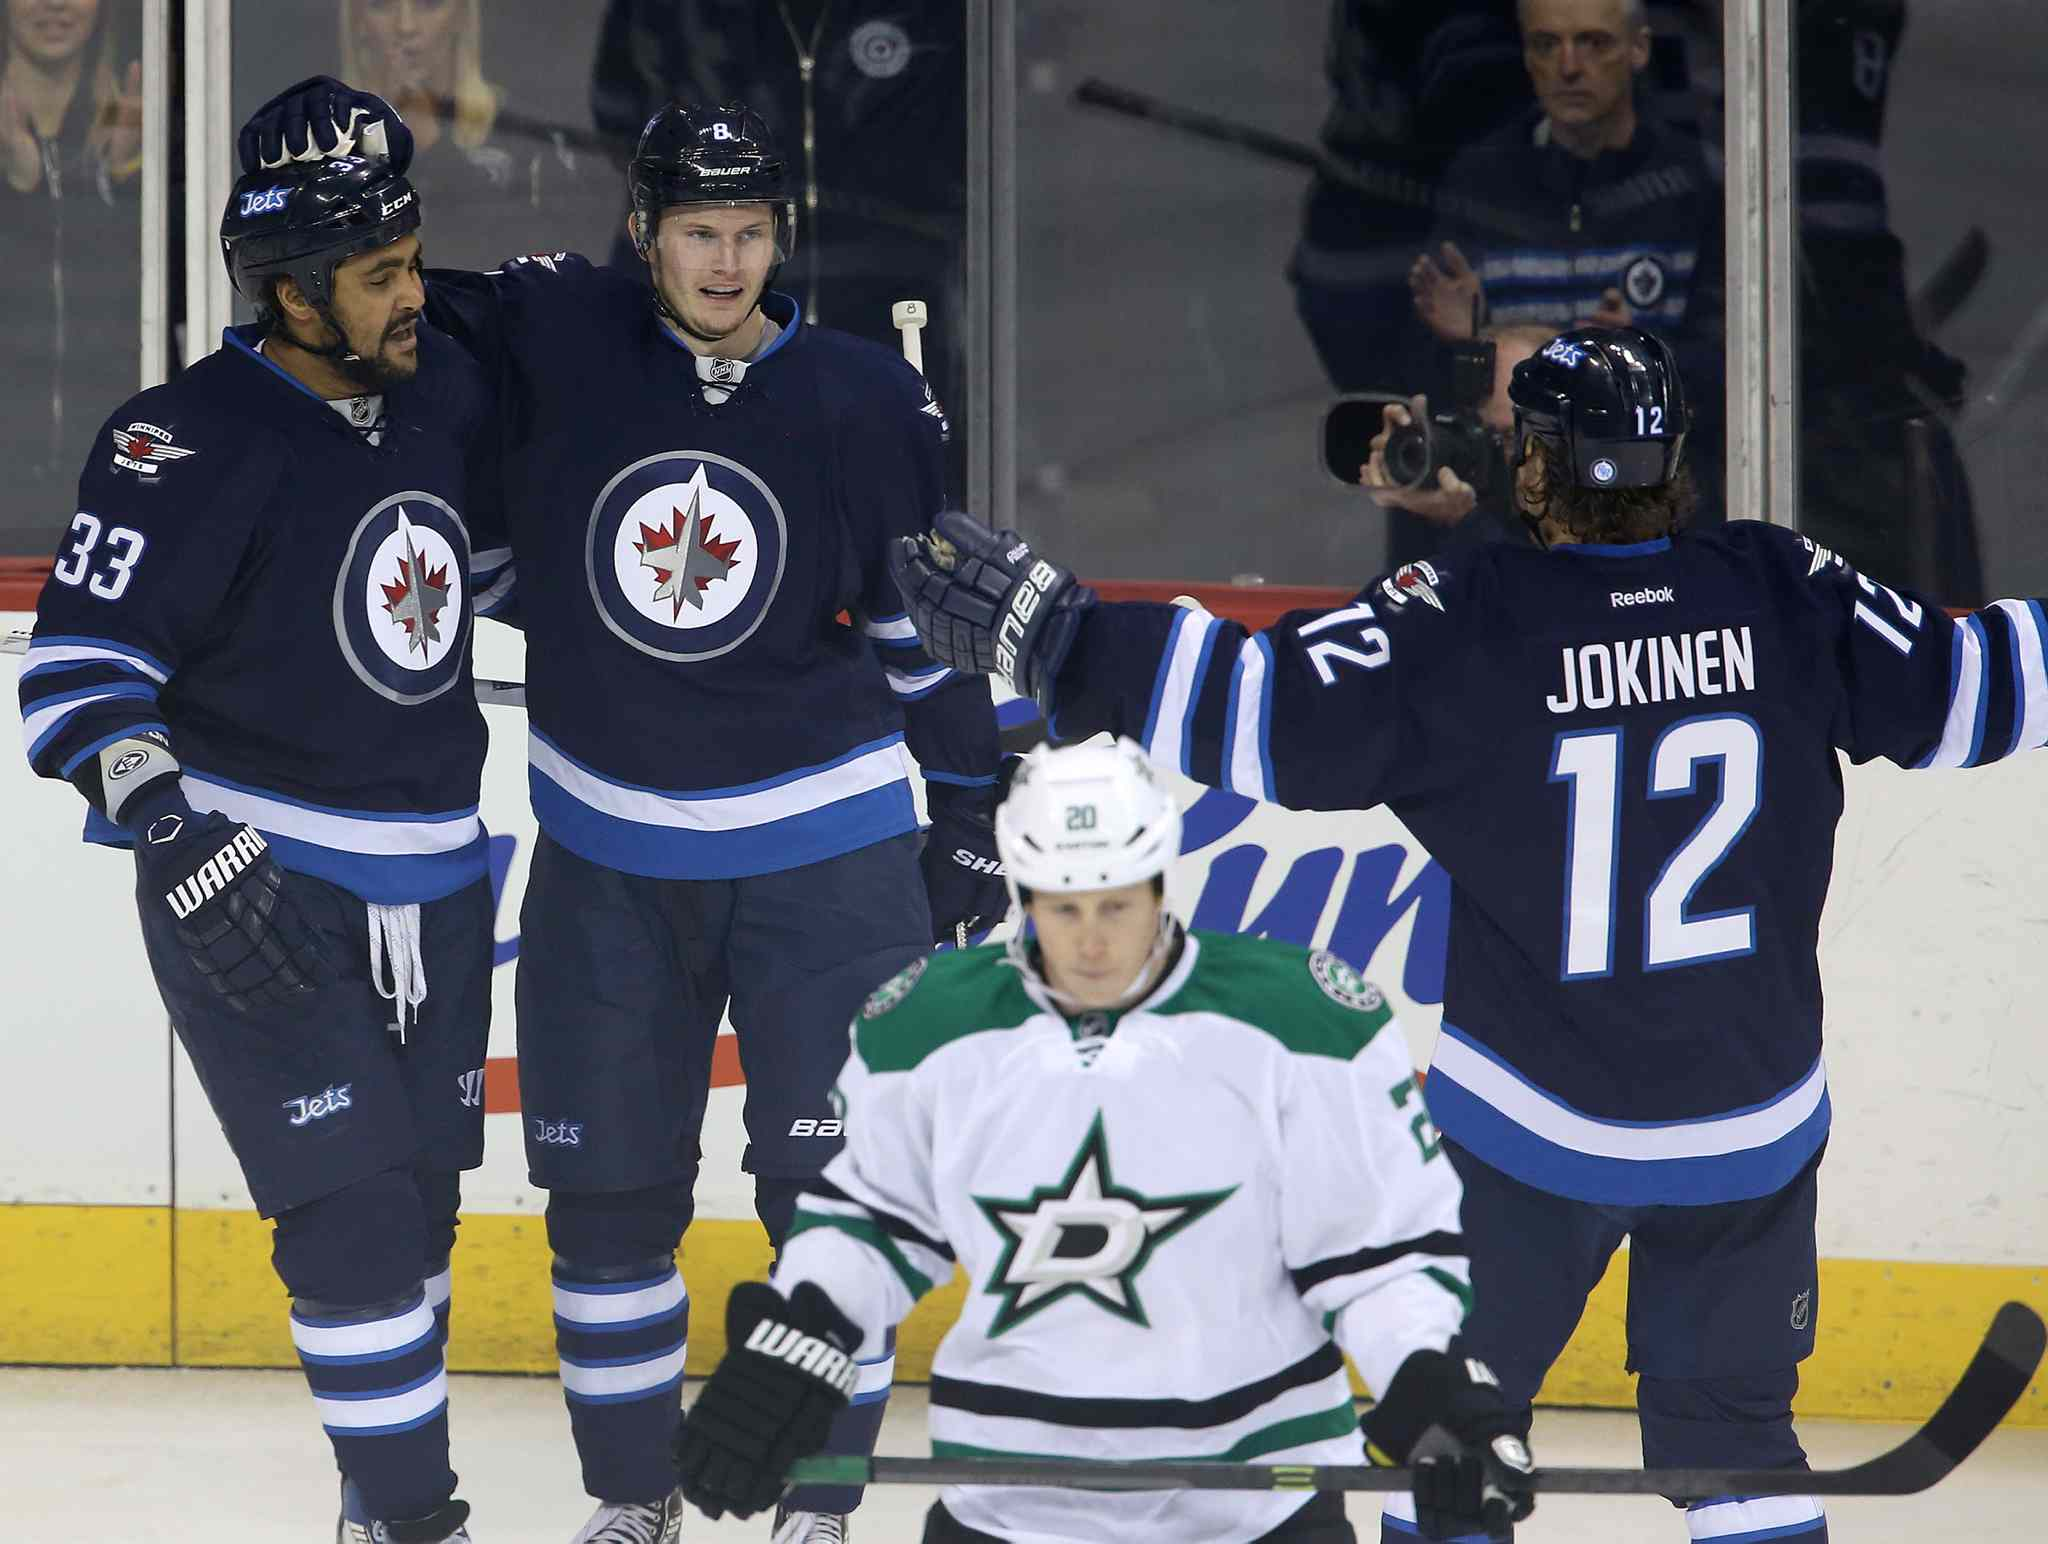 The Winnipeg Jets Dustin Byfuglien (33), Jacob Trouba (centre) and Olli Jokinen celebrate Trouba's goal against the Dallas Stars' as Cody Eakin (20) looks on during the first period.